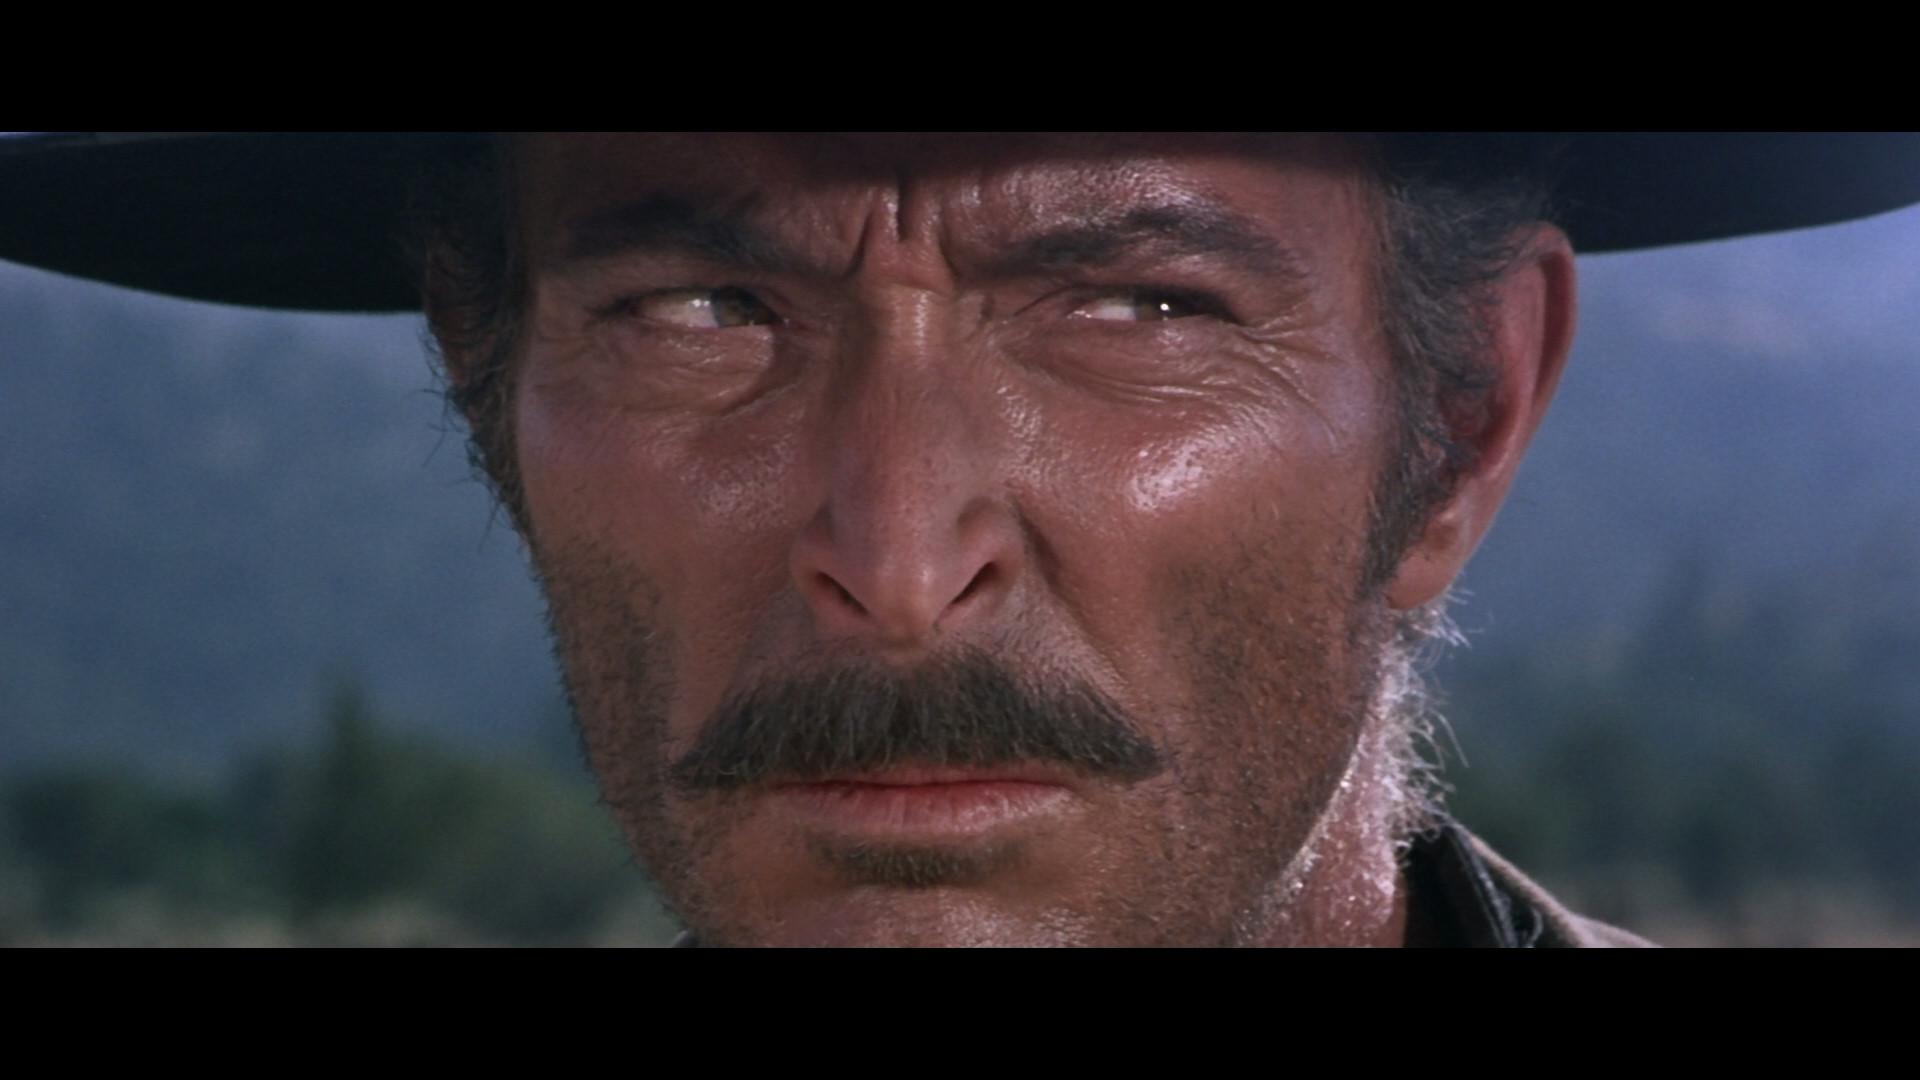 [Jeu] Association d'images - Page 4 The-Good-The-Bad-And-The-Ugly-Clint-Eastwood